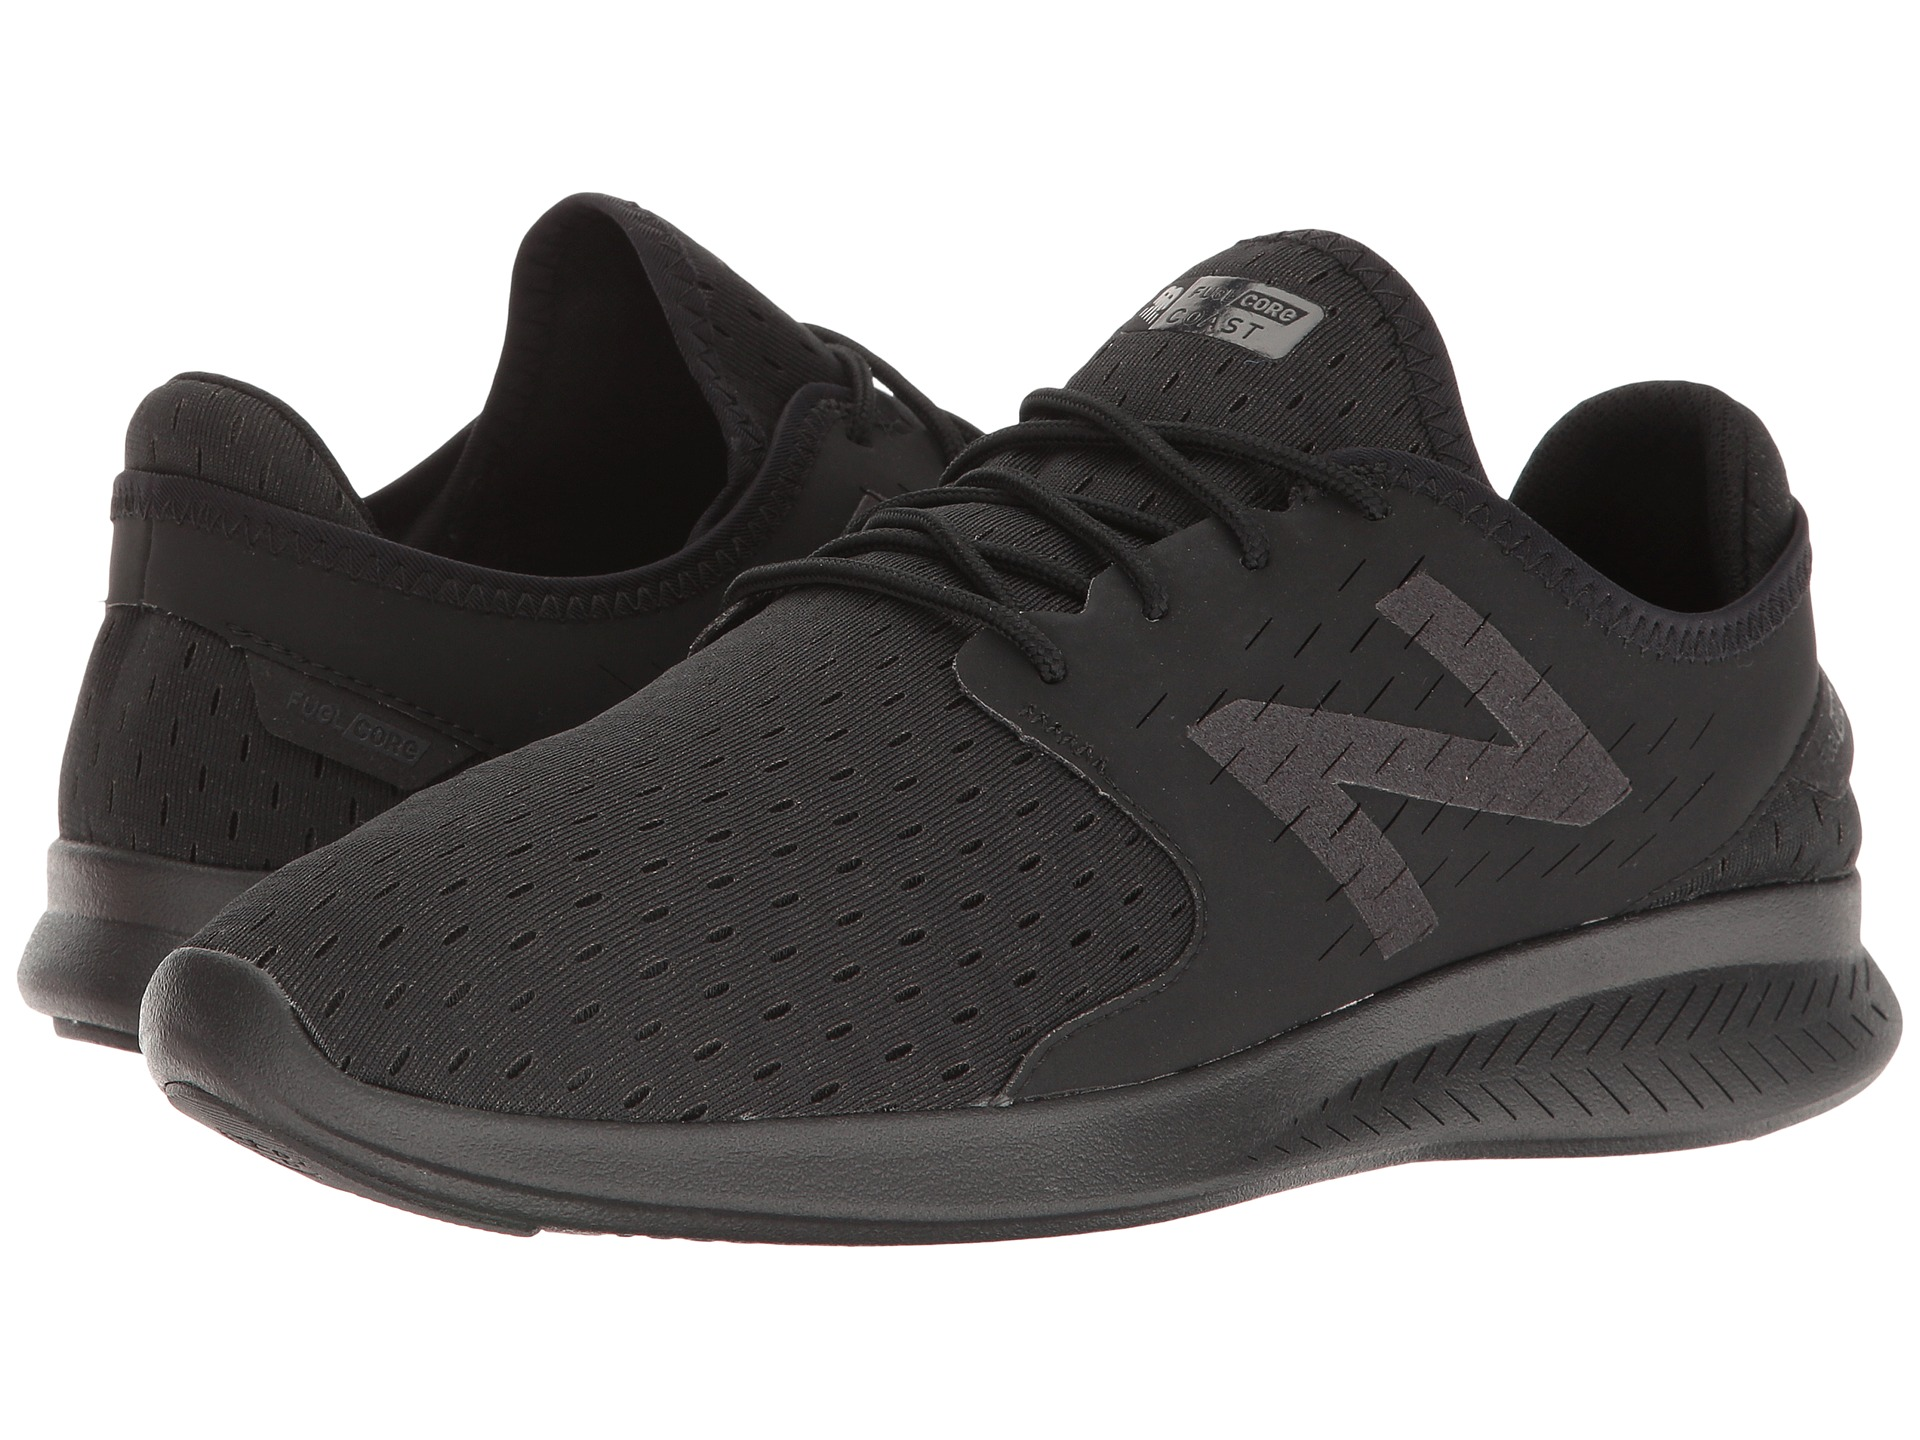 New Balance Shoes Zappos Women